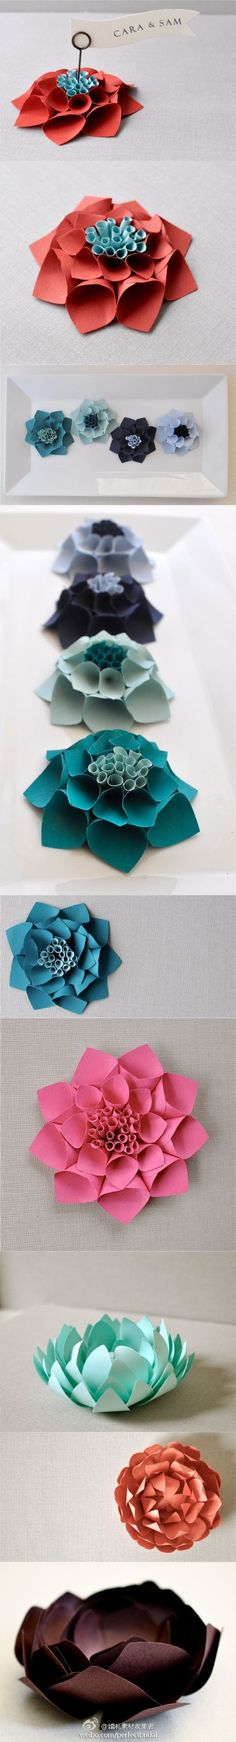 多样的立体纸花,怎么用都不错 (共9张图片, 大图请点链接: )Cool Flower Crafts , Paper Crafts for Teens , paper, craft, flower,wrap, gift, decor,blumen,basteln,bastelvorlage,tutorial diy, spring kids crafts, paper flowers,diy, bauble, ornament, decoration